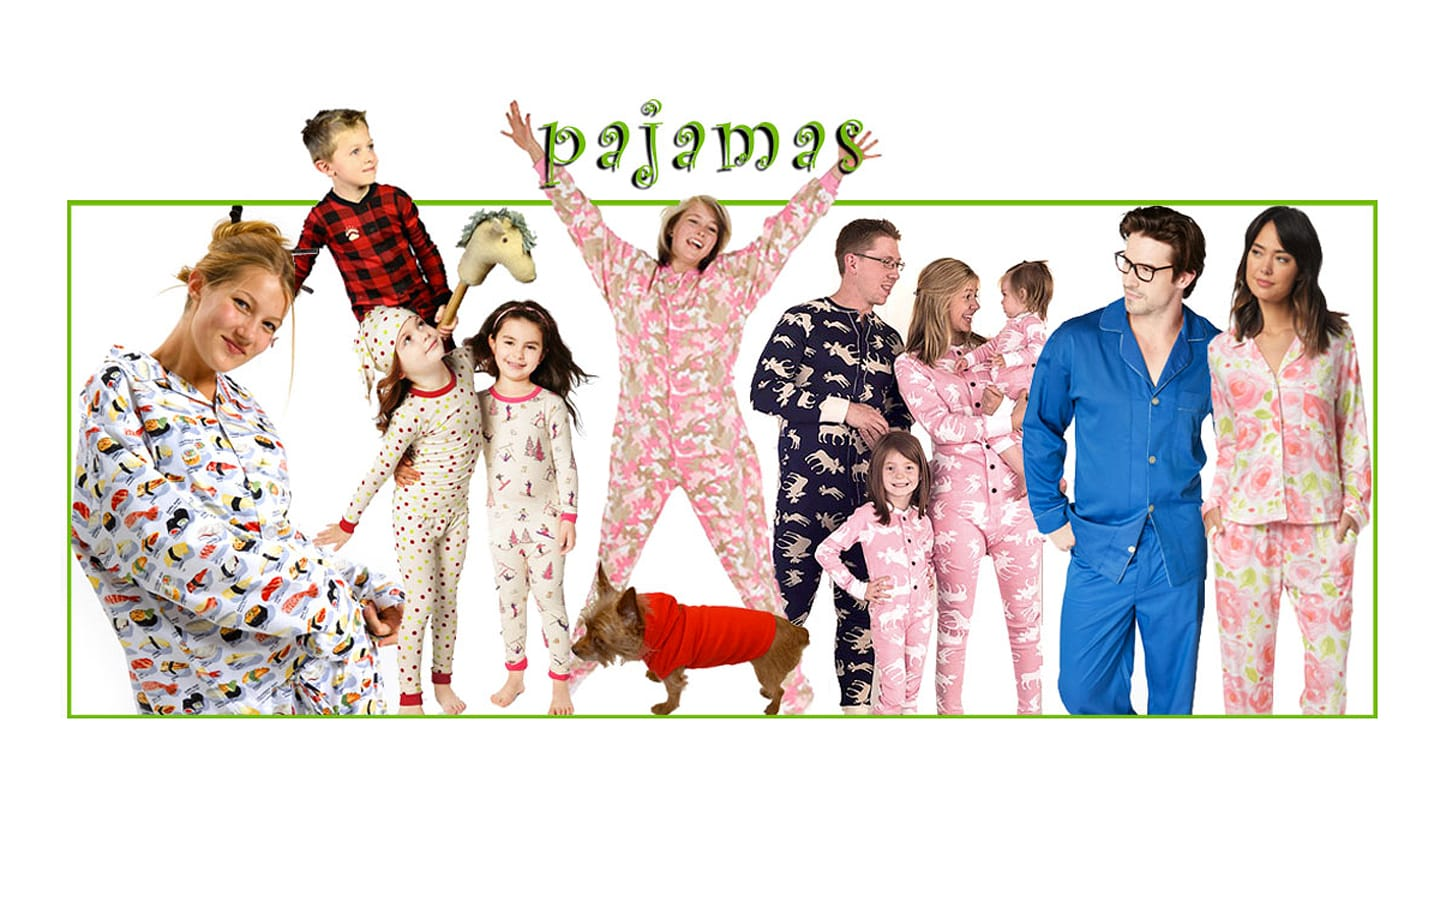 The Pajama Company: Pajamas Make Things Right!